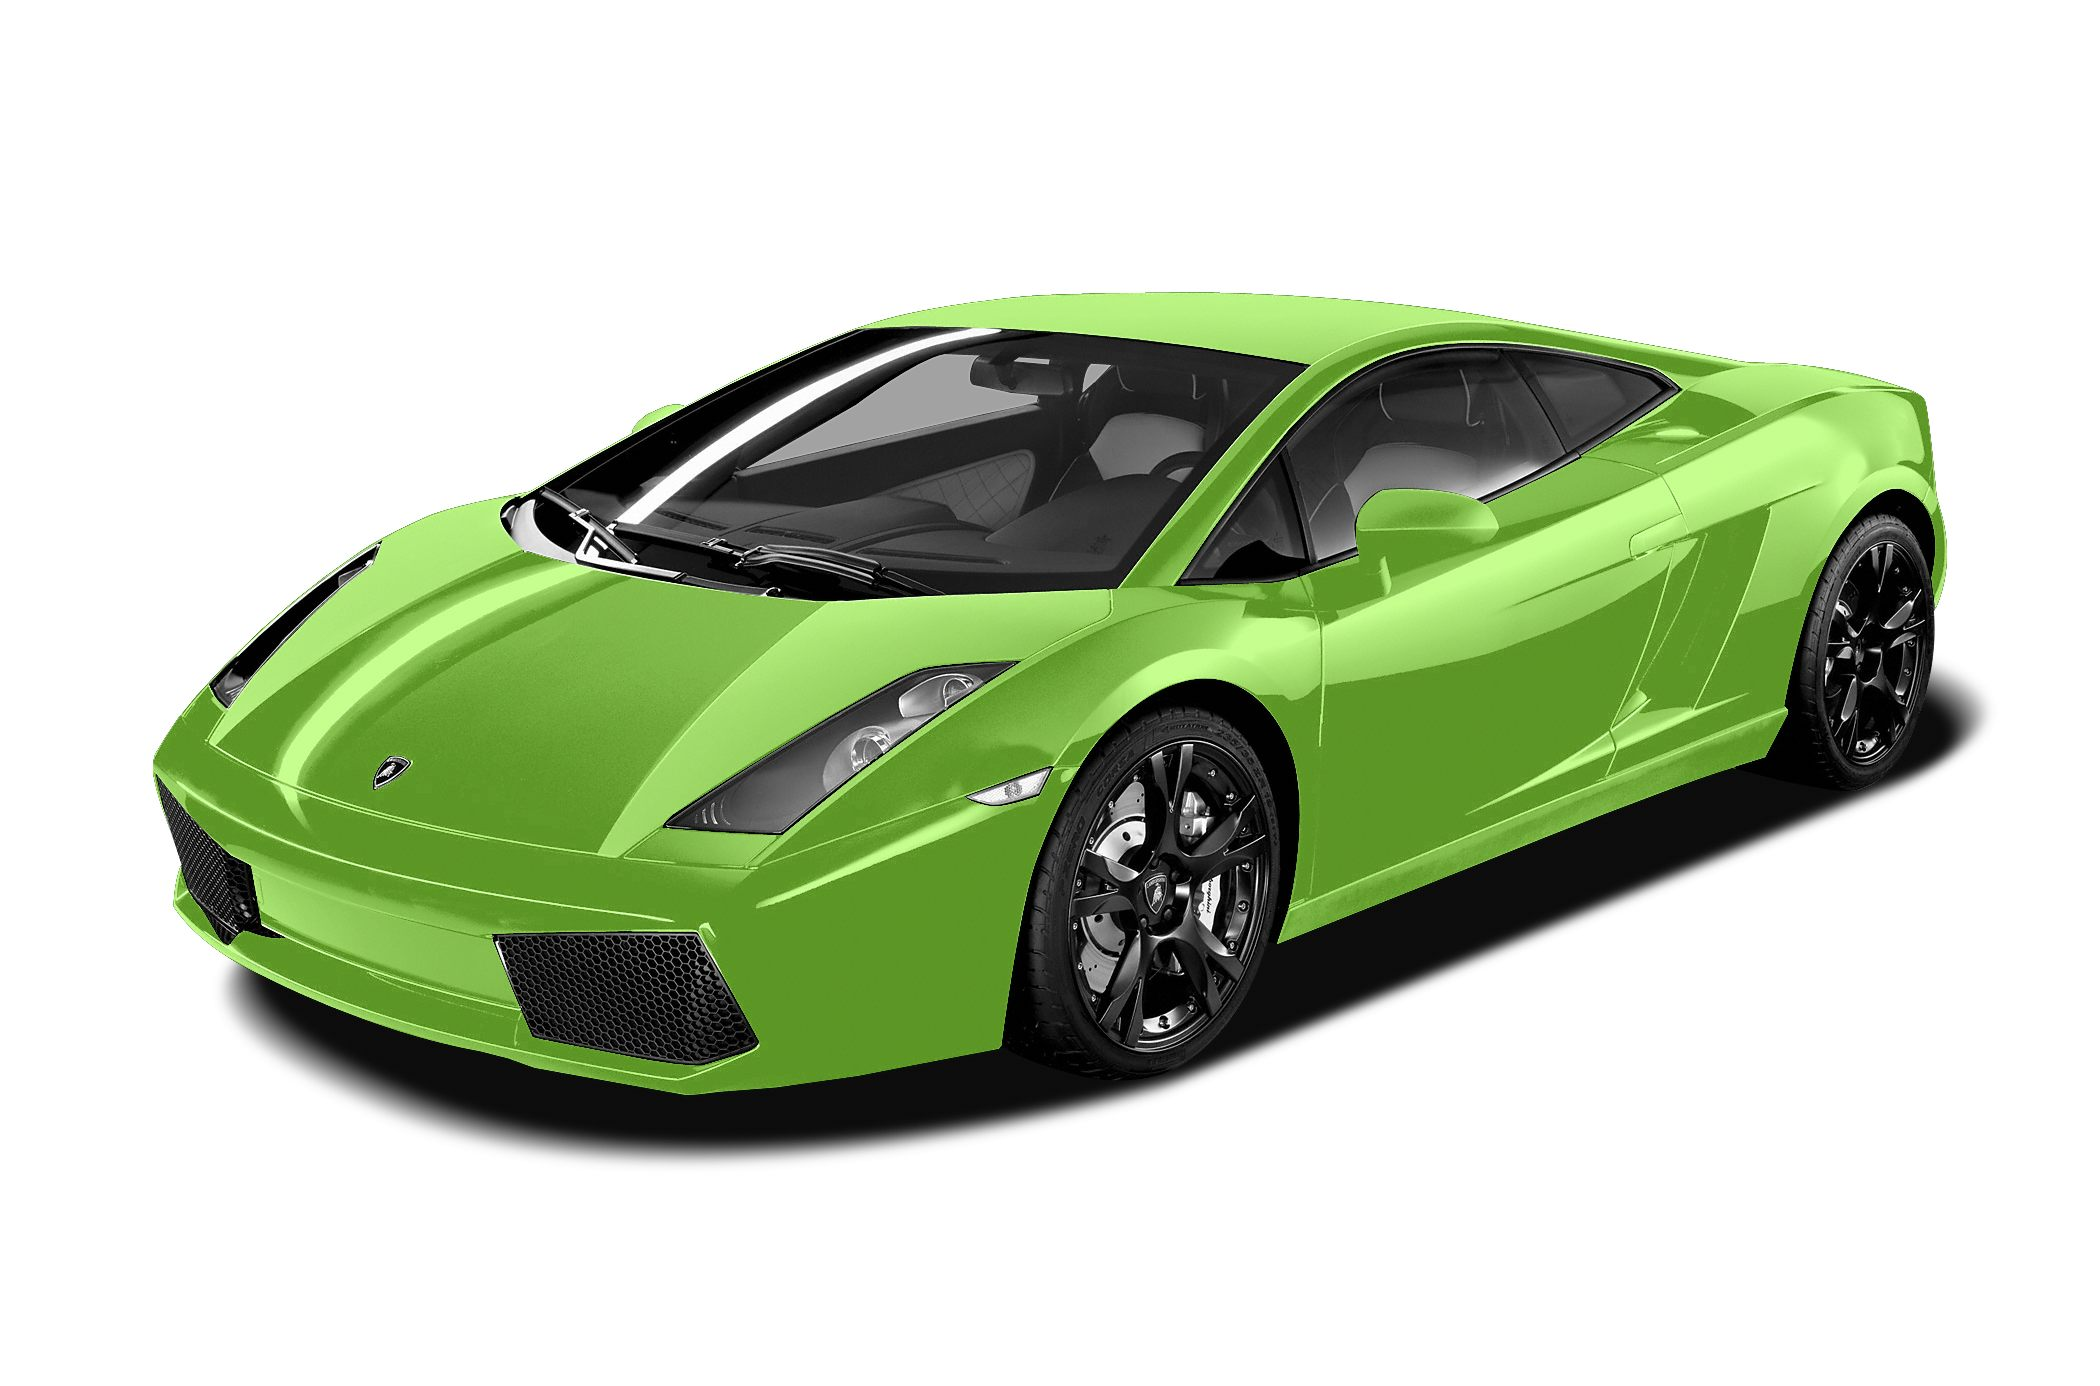 2007 Lamborghini Gallardo